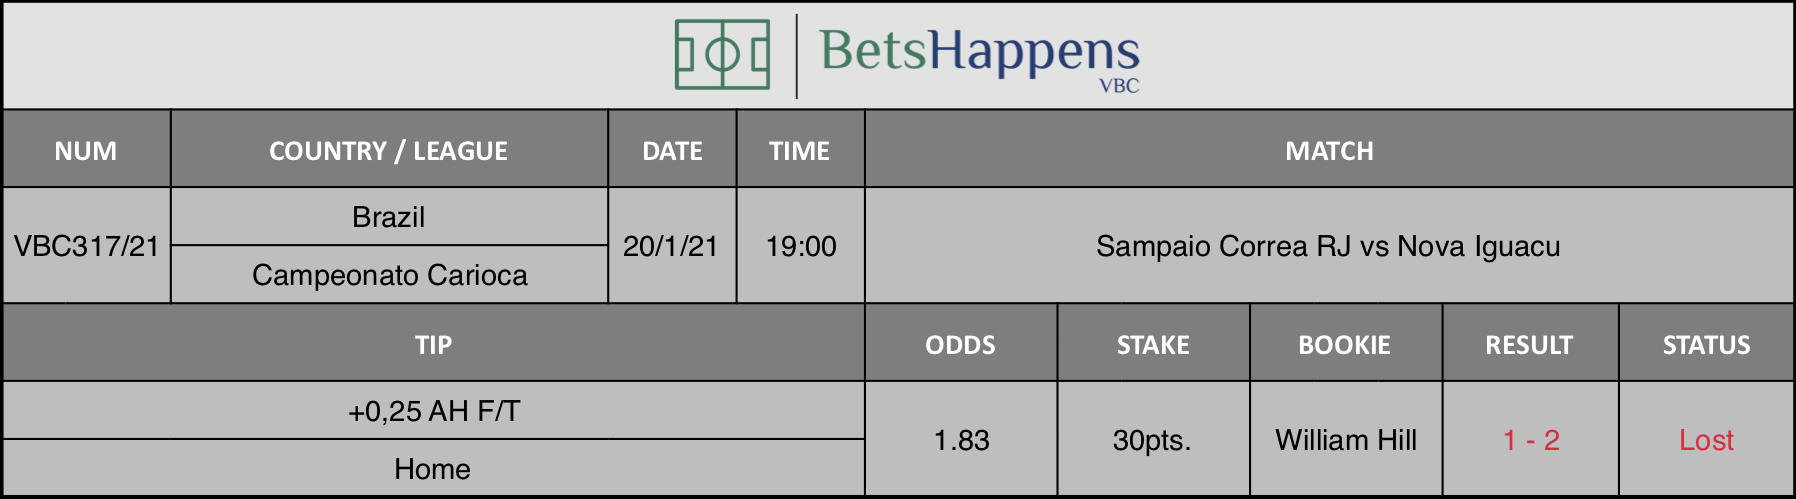 Results of our tip for the Sampaio Correa RJ vs Nova Iguacu match where +0,25 AH F/T  Home is recommended.